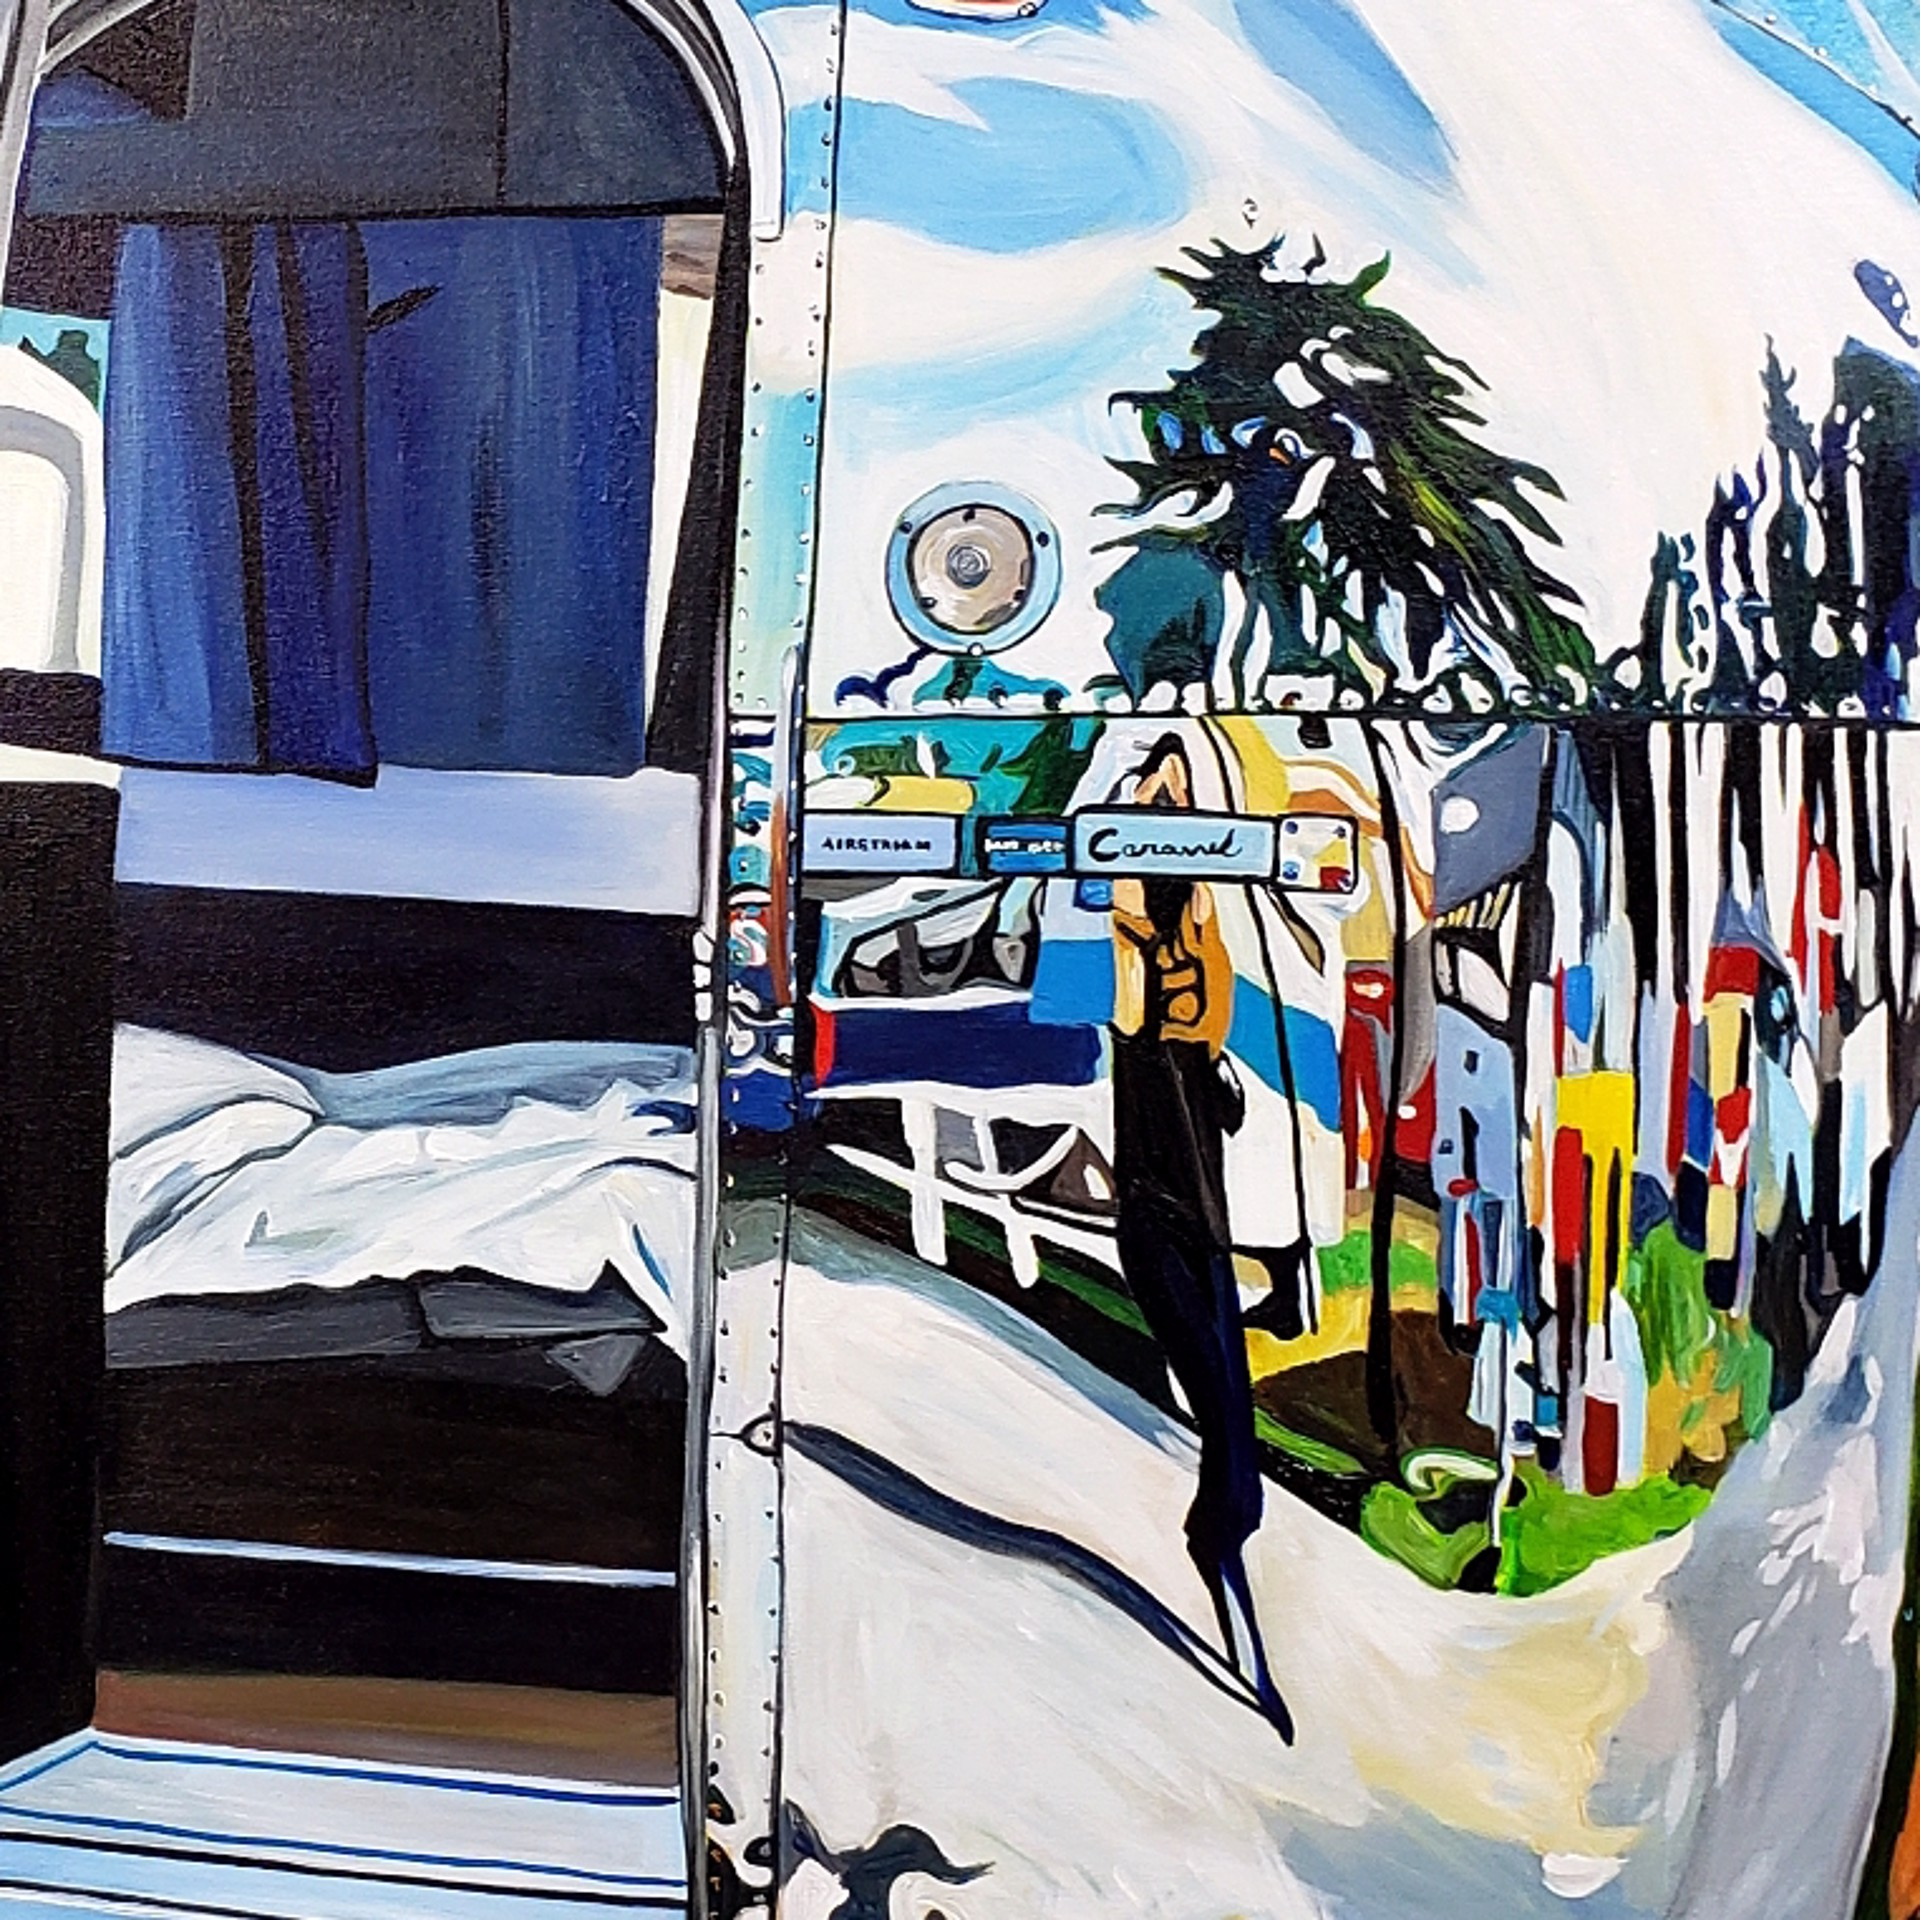 Airstream Self-Reflection, Lynden, WA by Taralee Guild